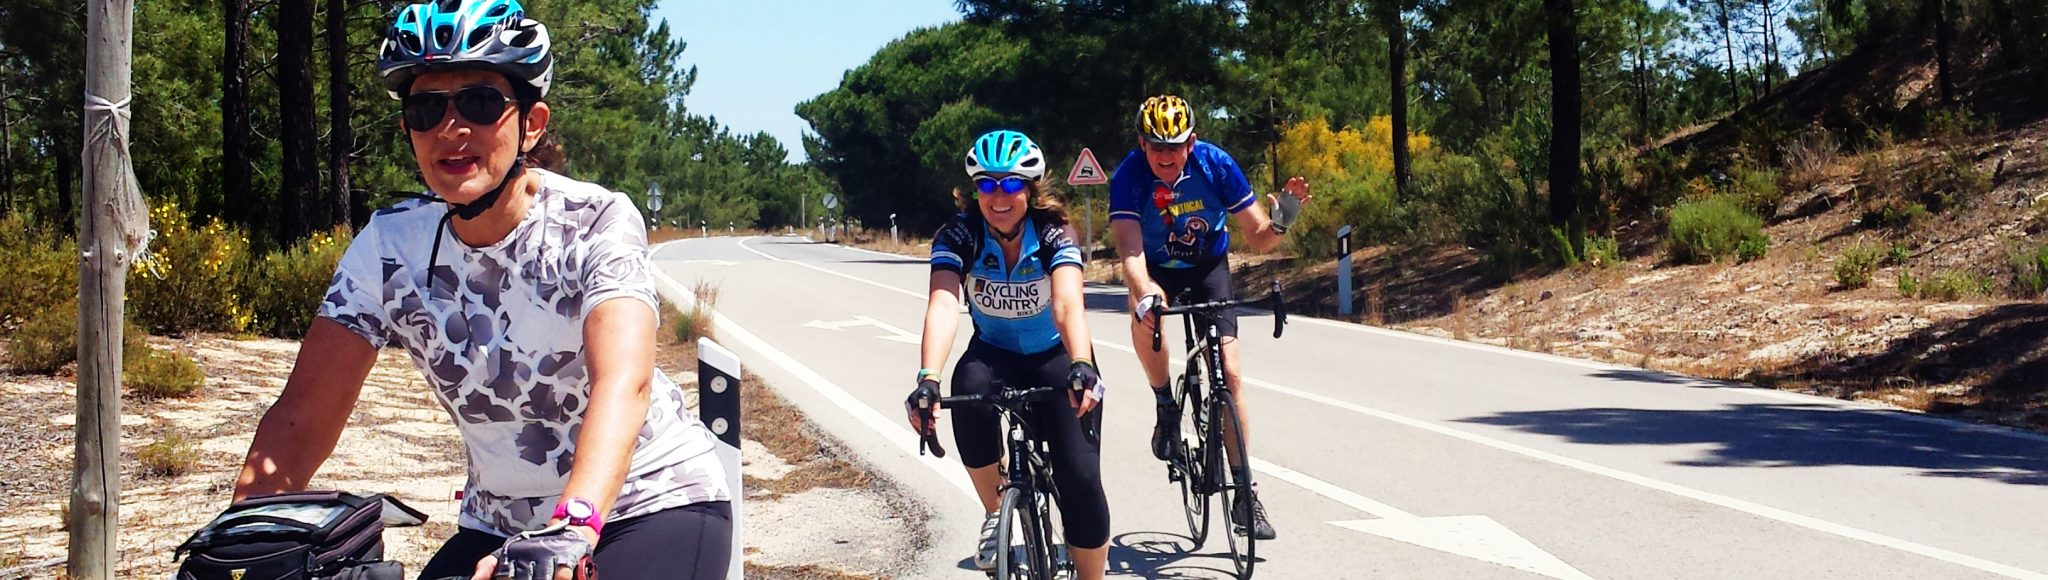 Guided Road Cycle Tour in Portugal's South, the Alentejo